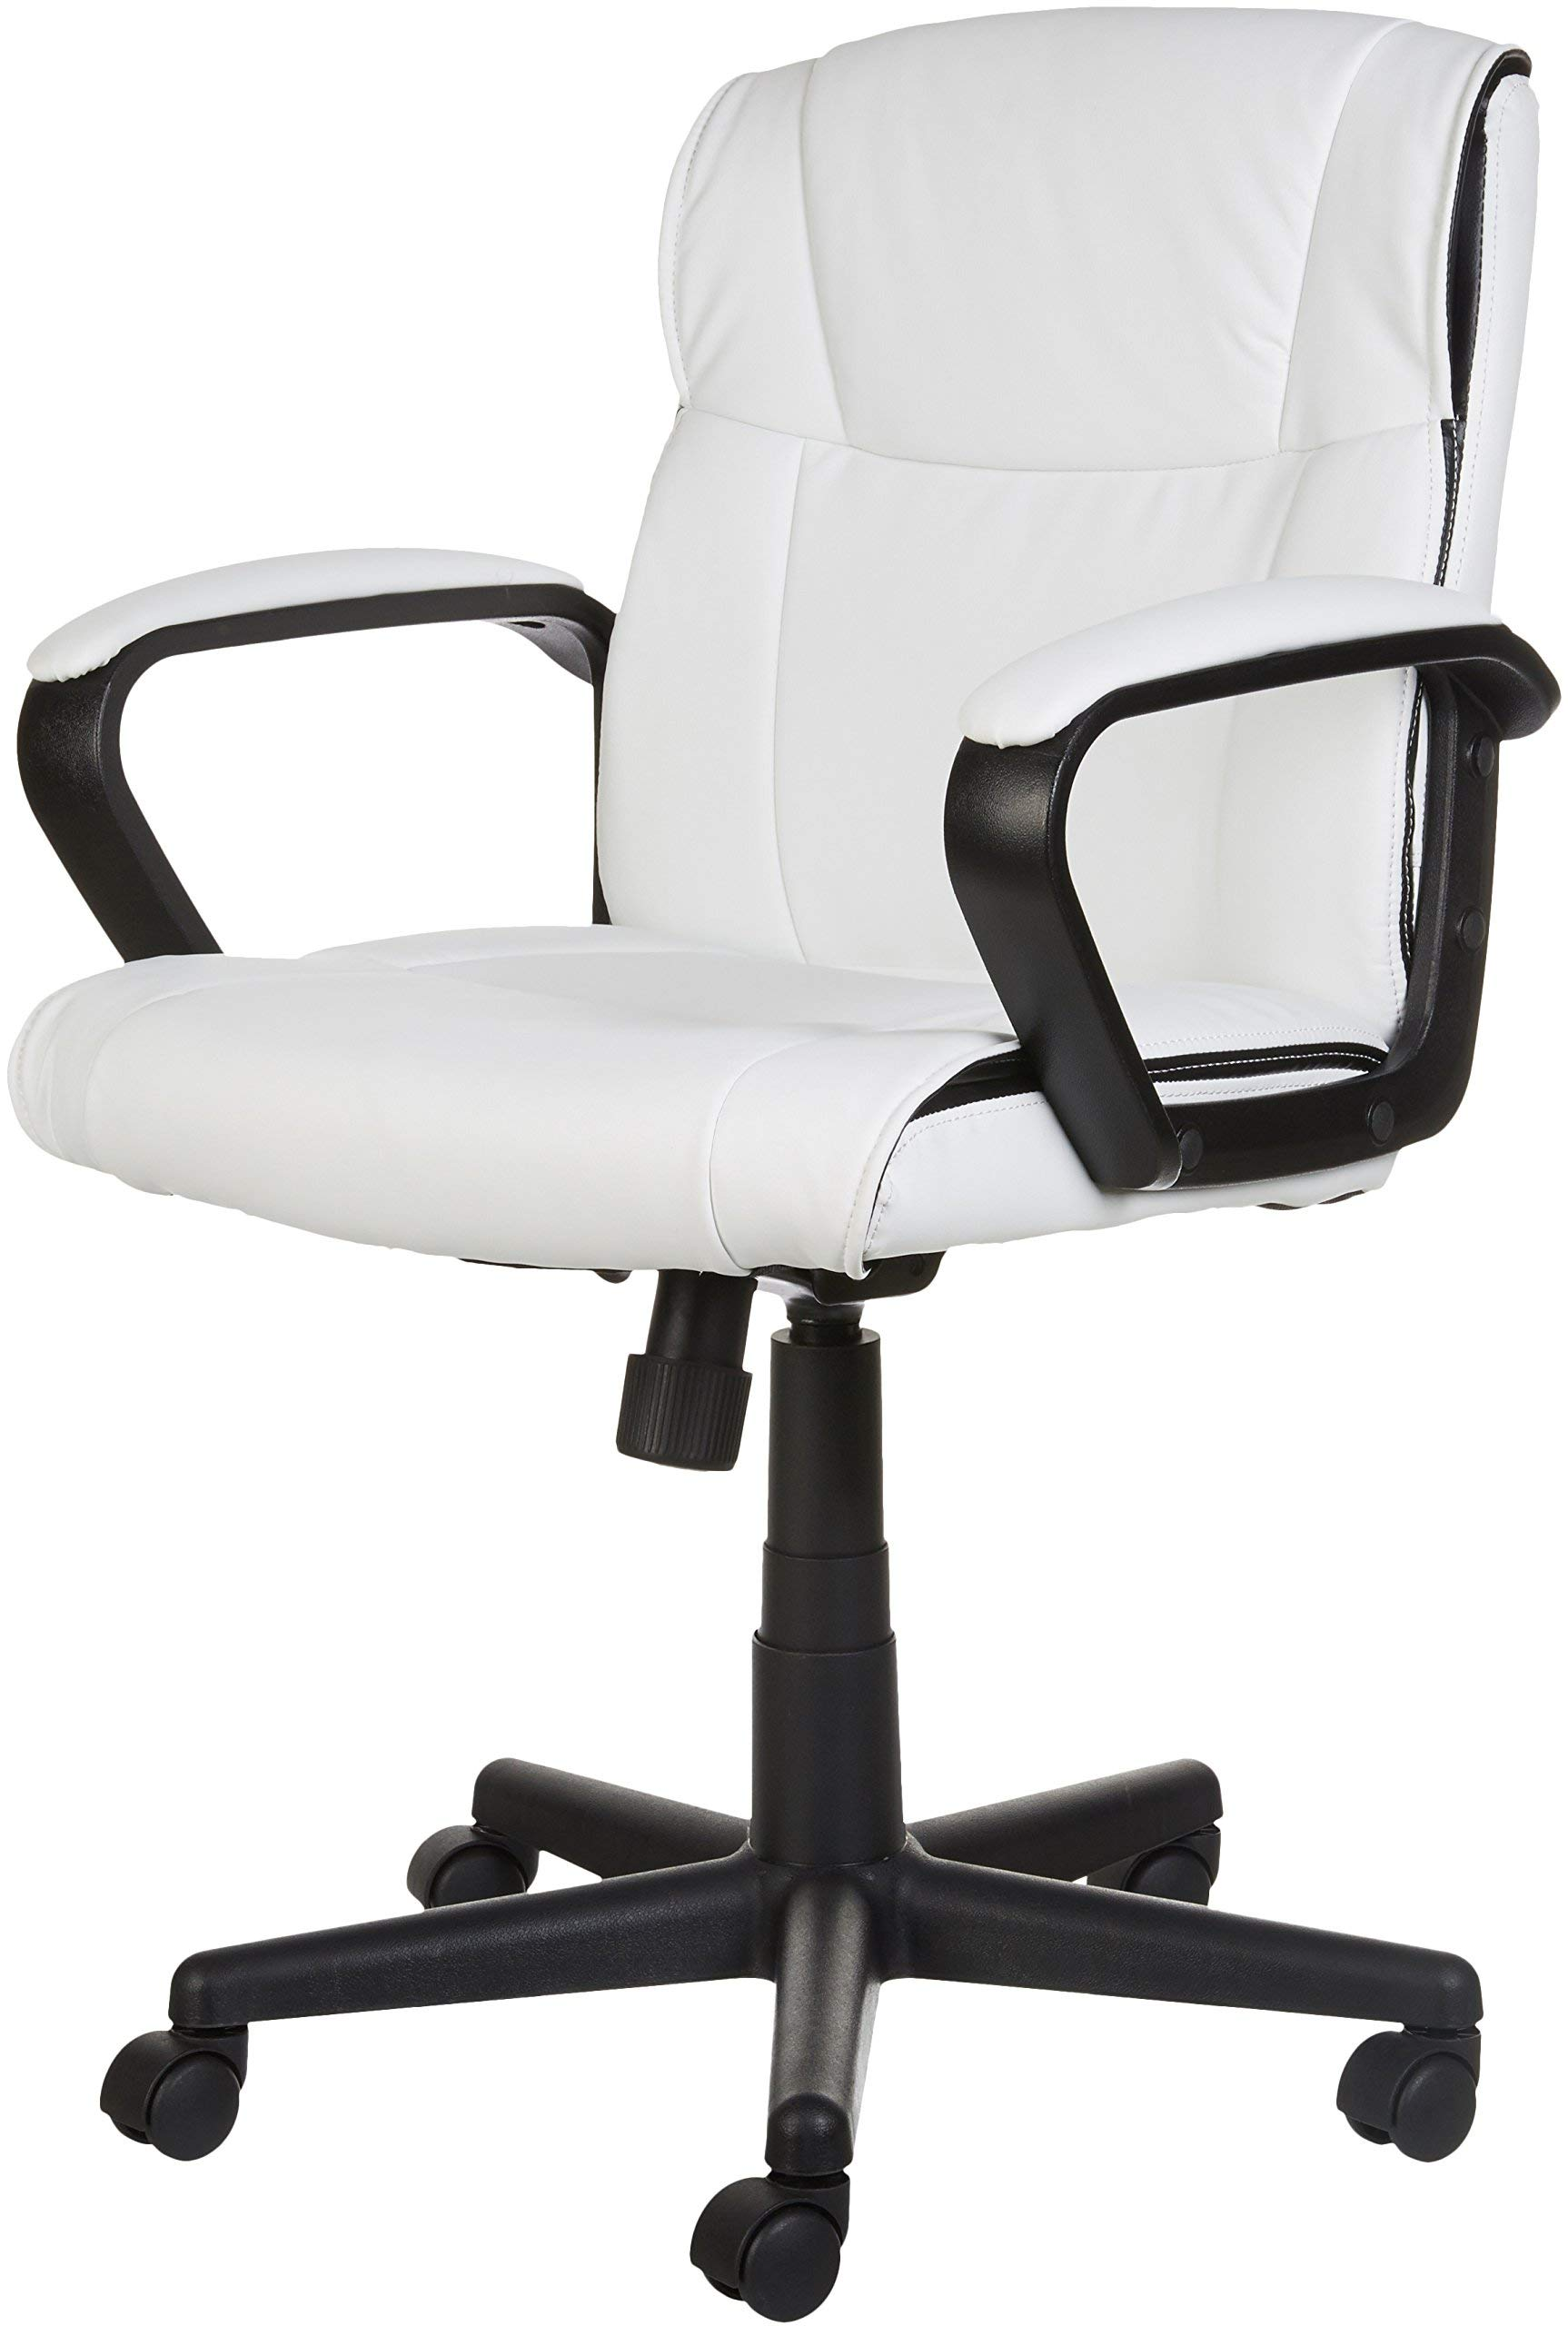 AmazonBasics Classic Leather-Padded Mid-Back Office Computer Desk Chair with Armrest - White by AmazonBasics (Image #6)